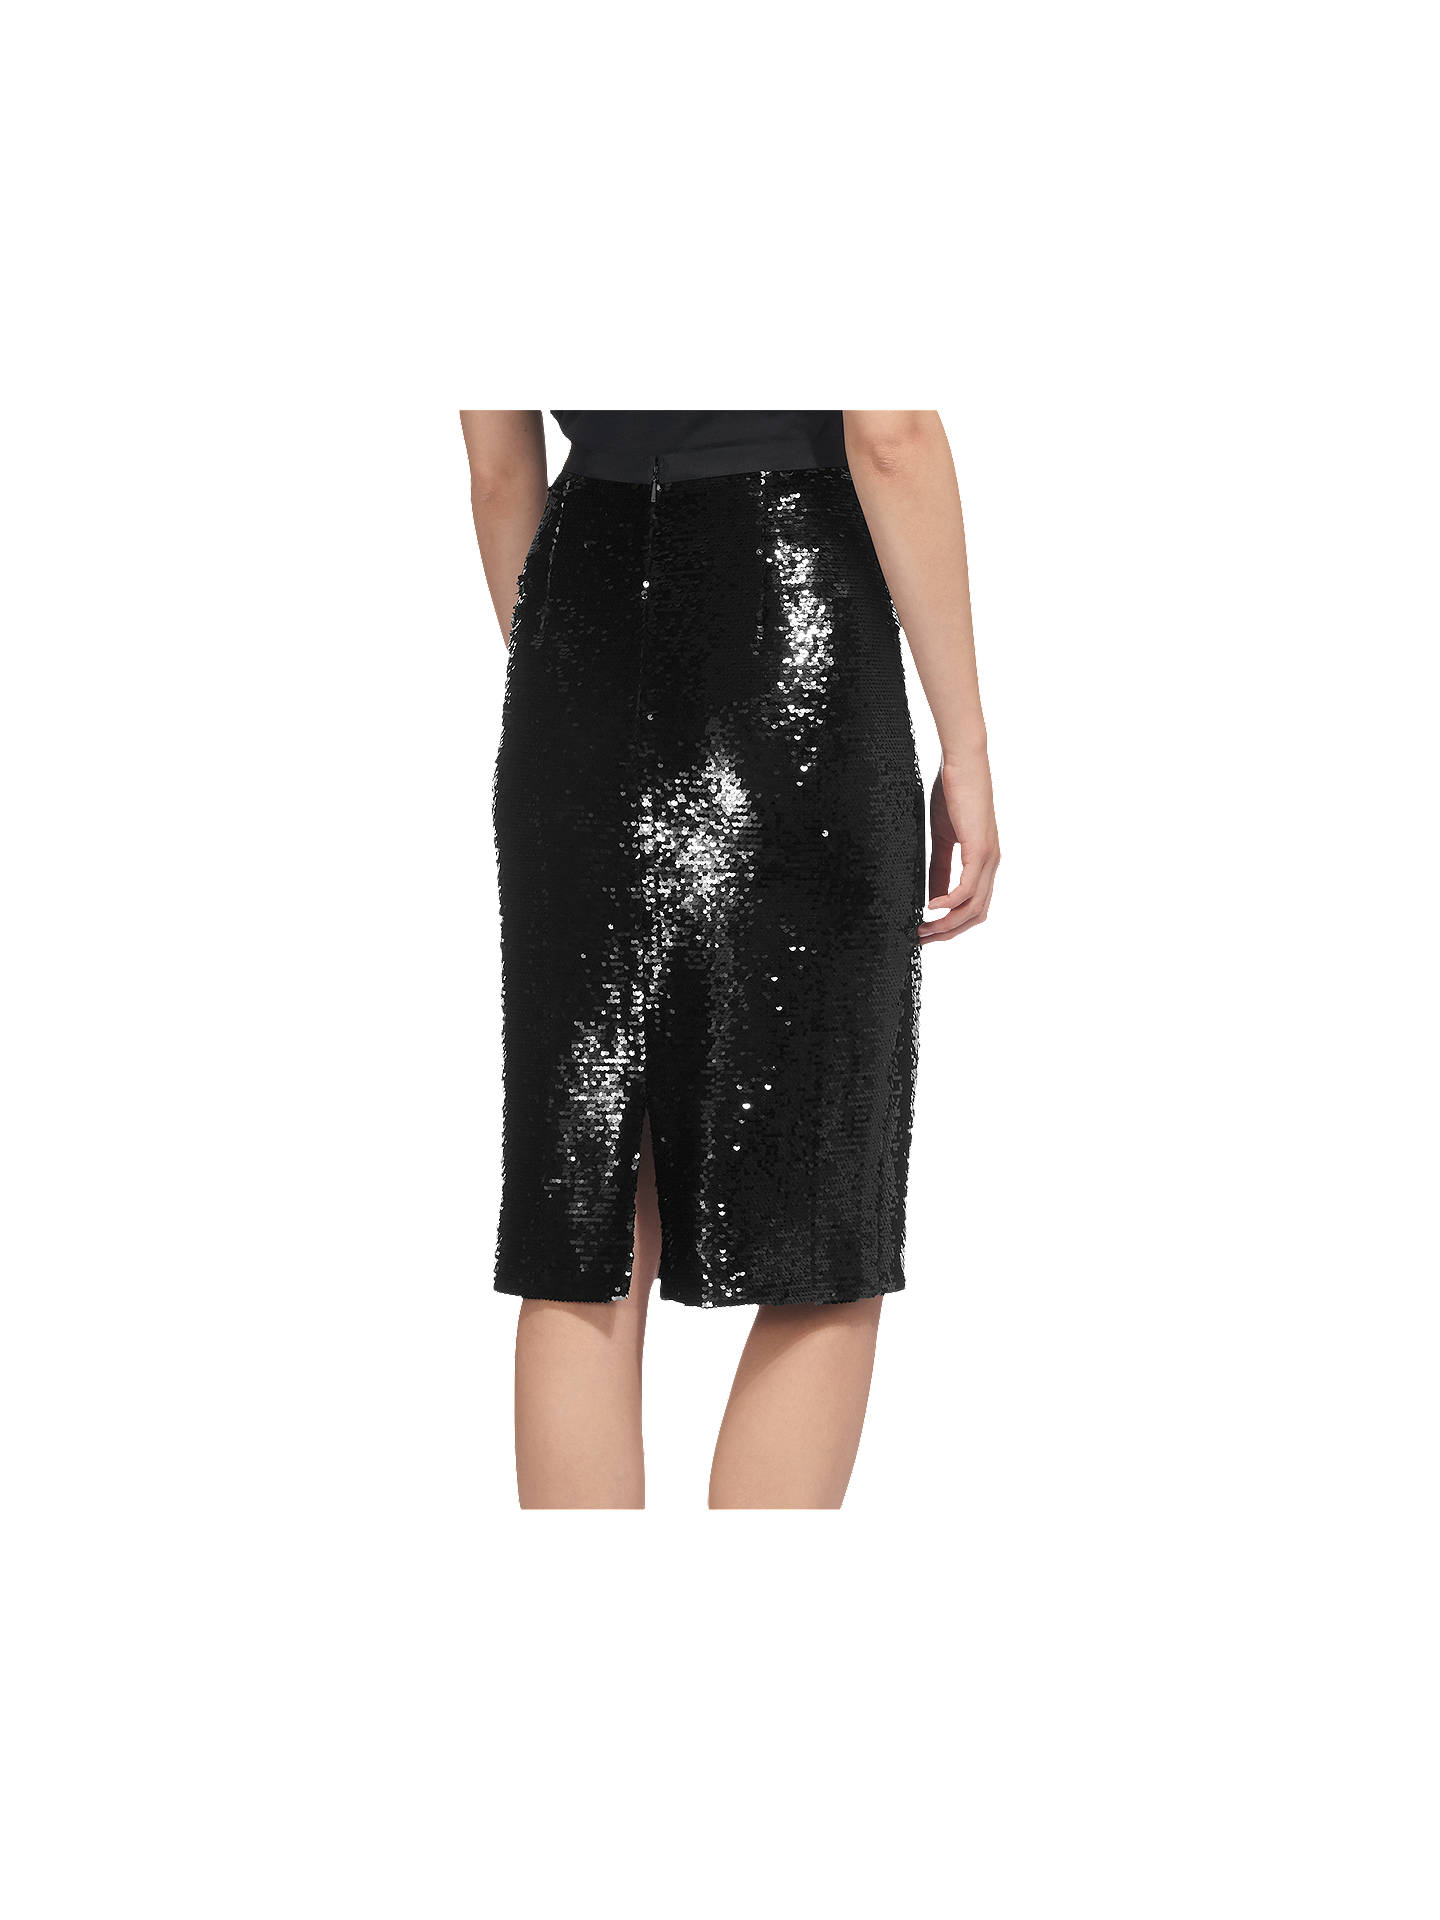 b28f3d8d0fc8 ... Buy Whistles Sequin Pencil Skirt, Black, 6 Online at johnlewis.com ...